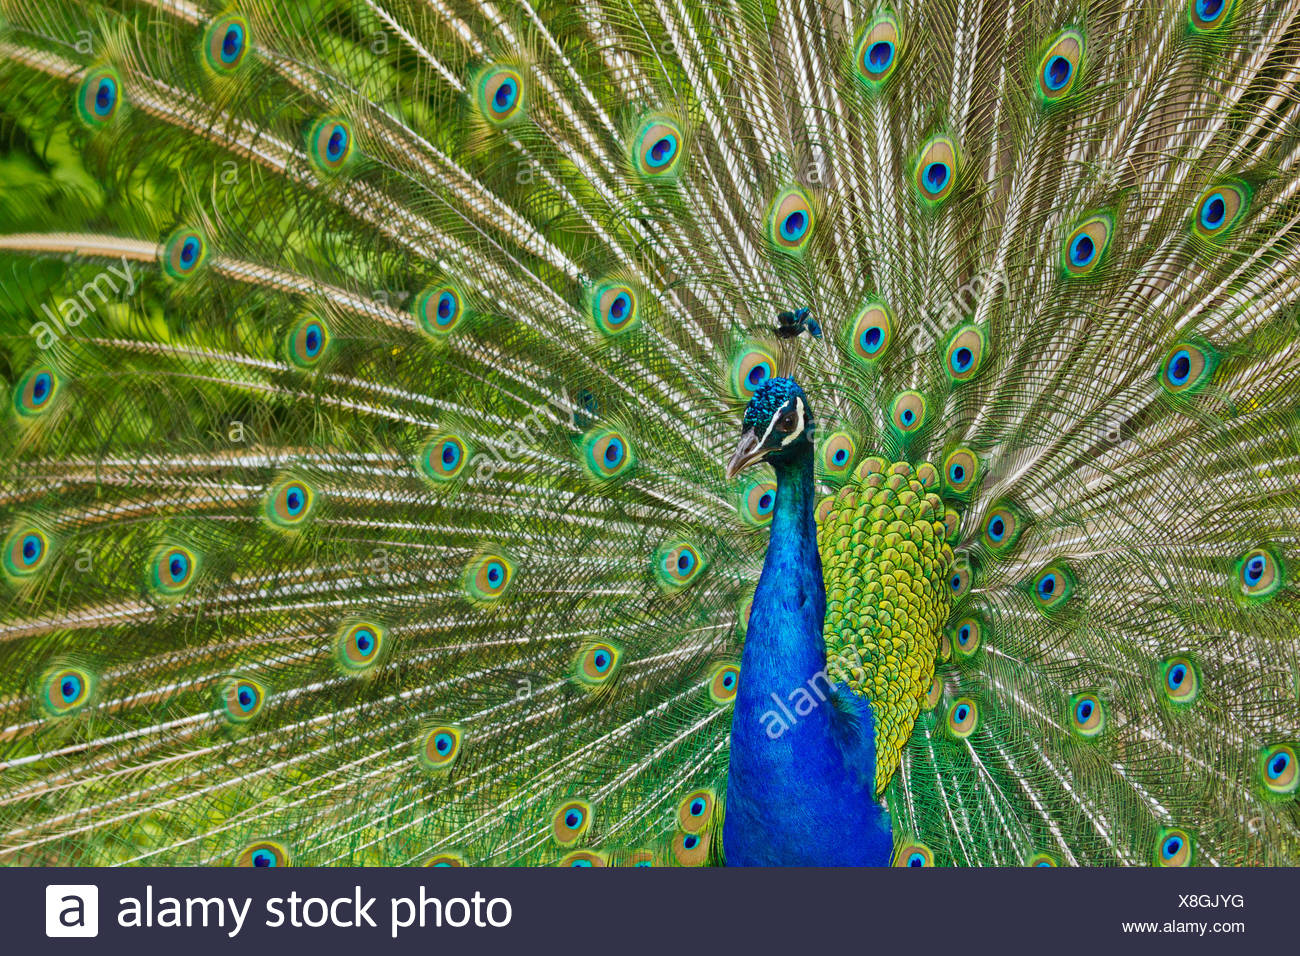 Indian Peafowl or Blue Peafowl (Pavo cristatus) Stock Photo